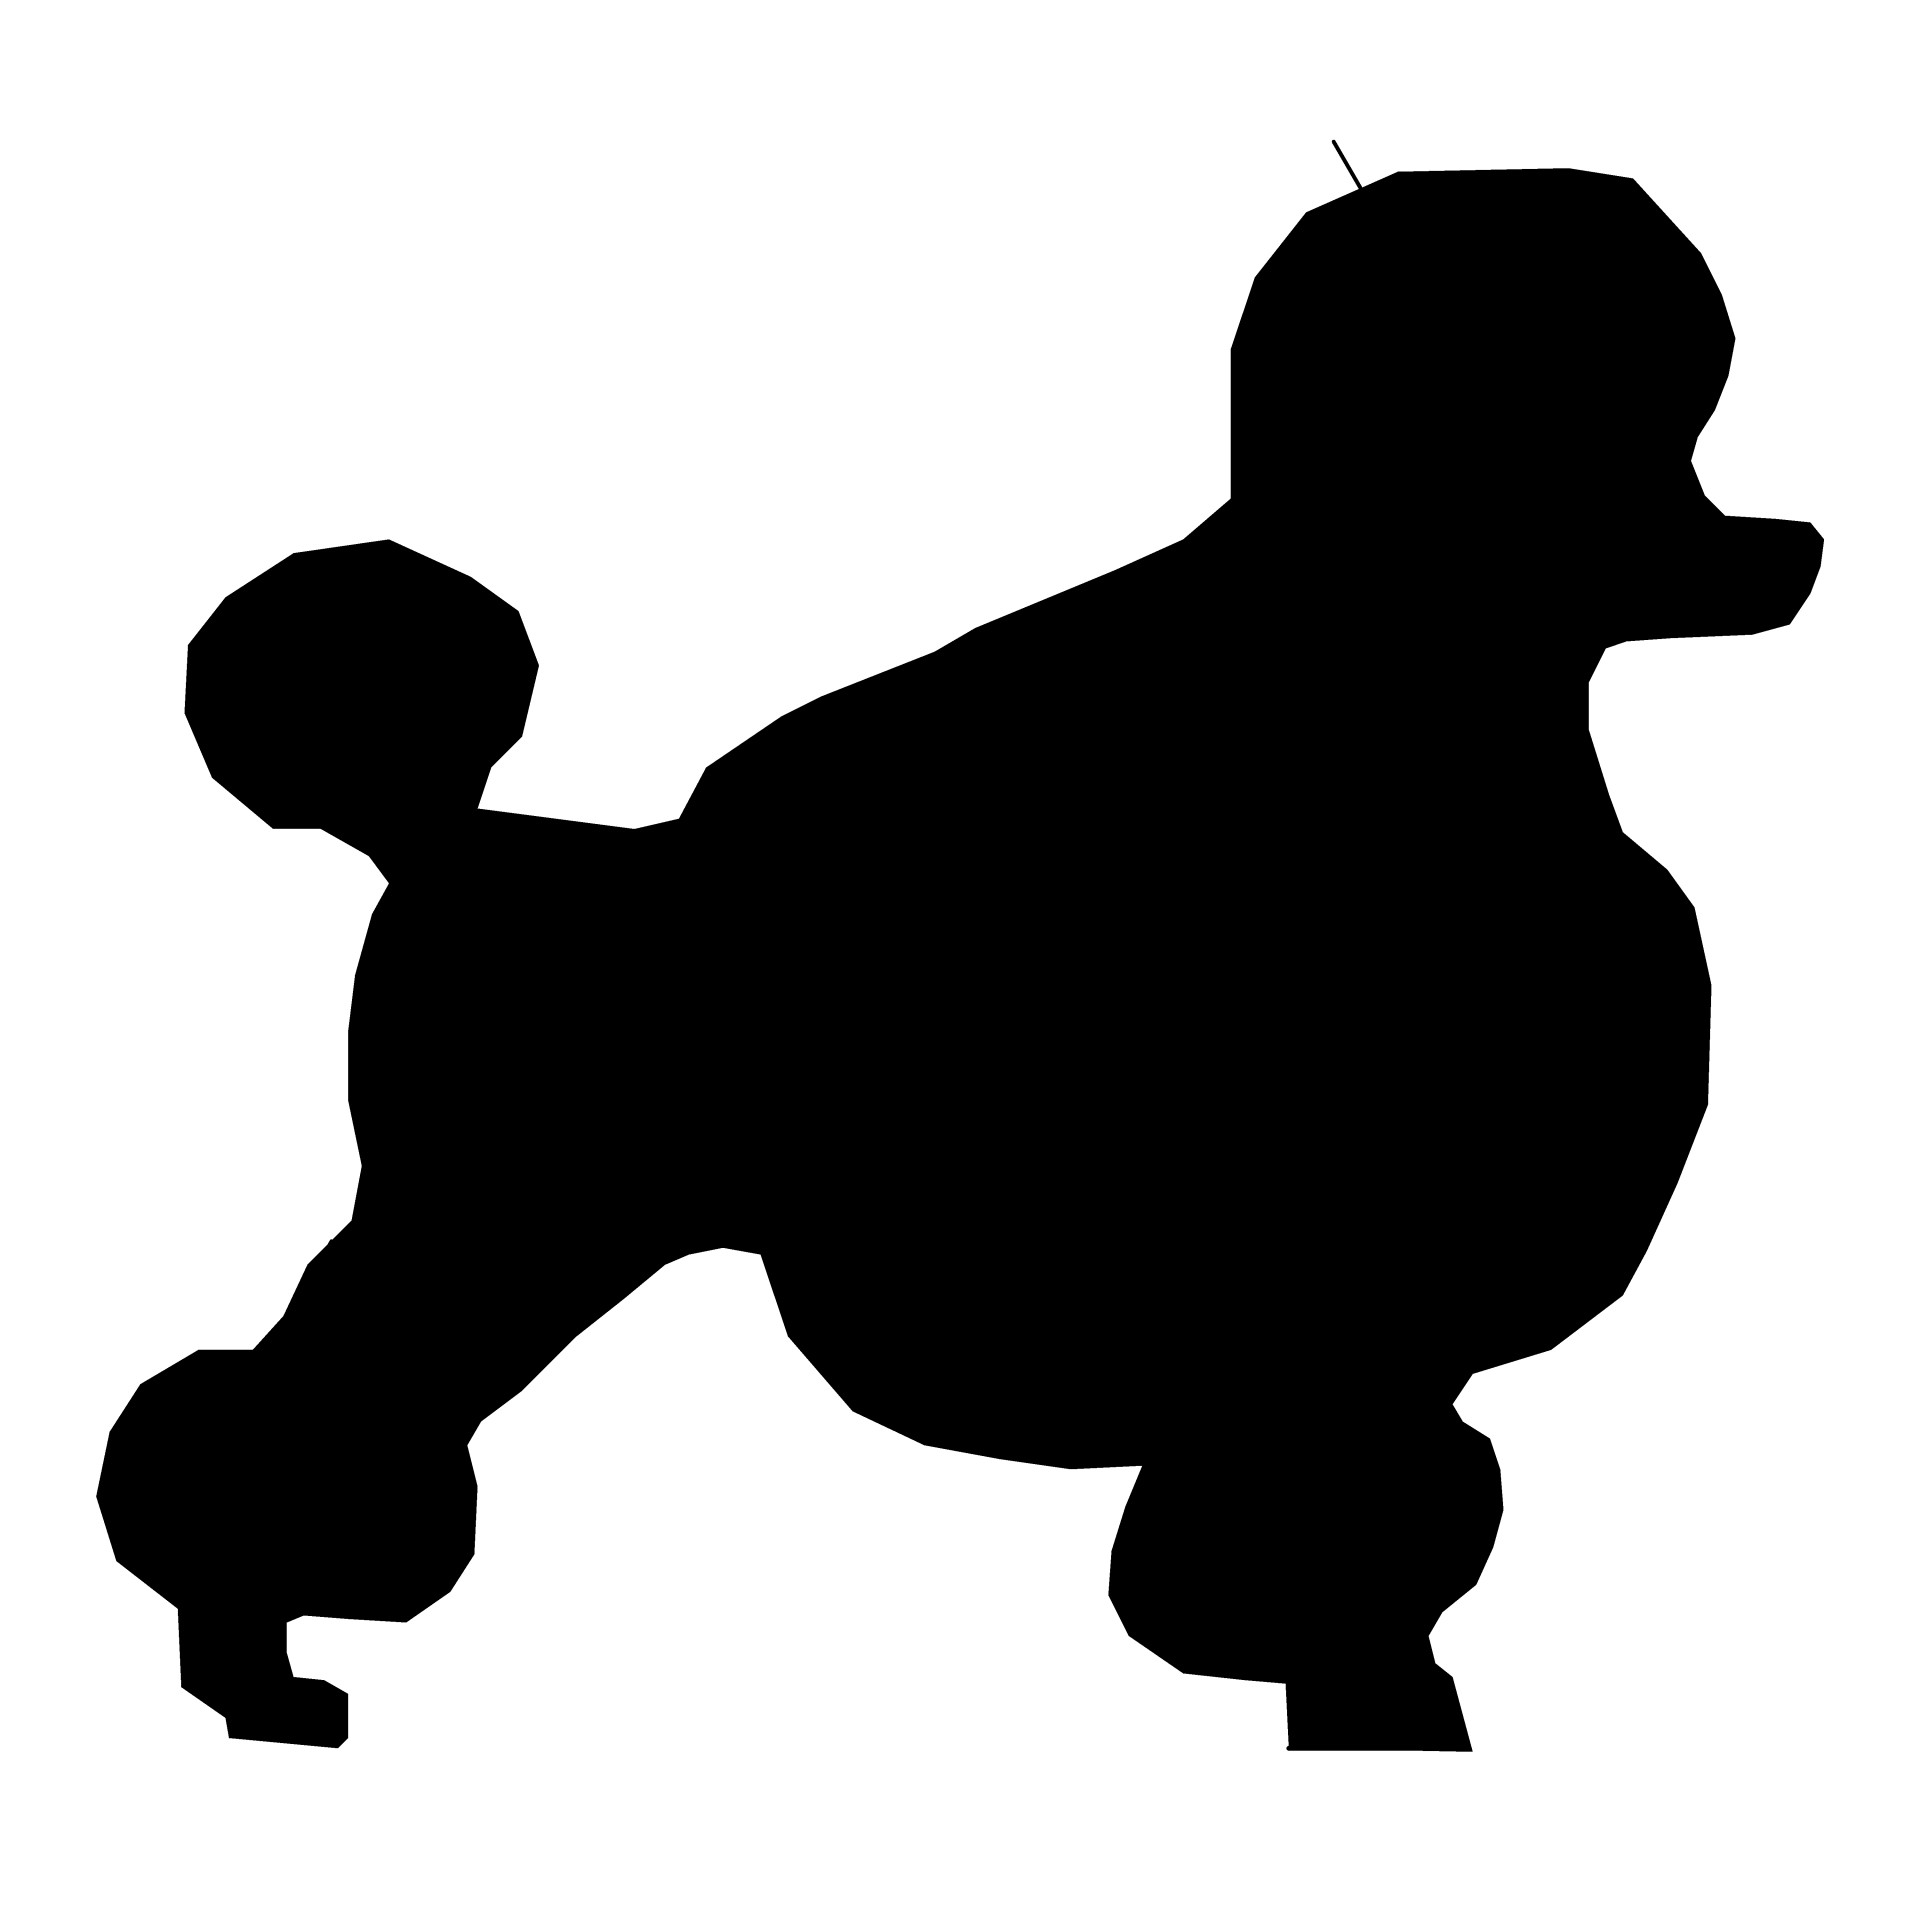 1920x1920 Dog Silhouette Drawing 07 Free Stock Photo